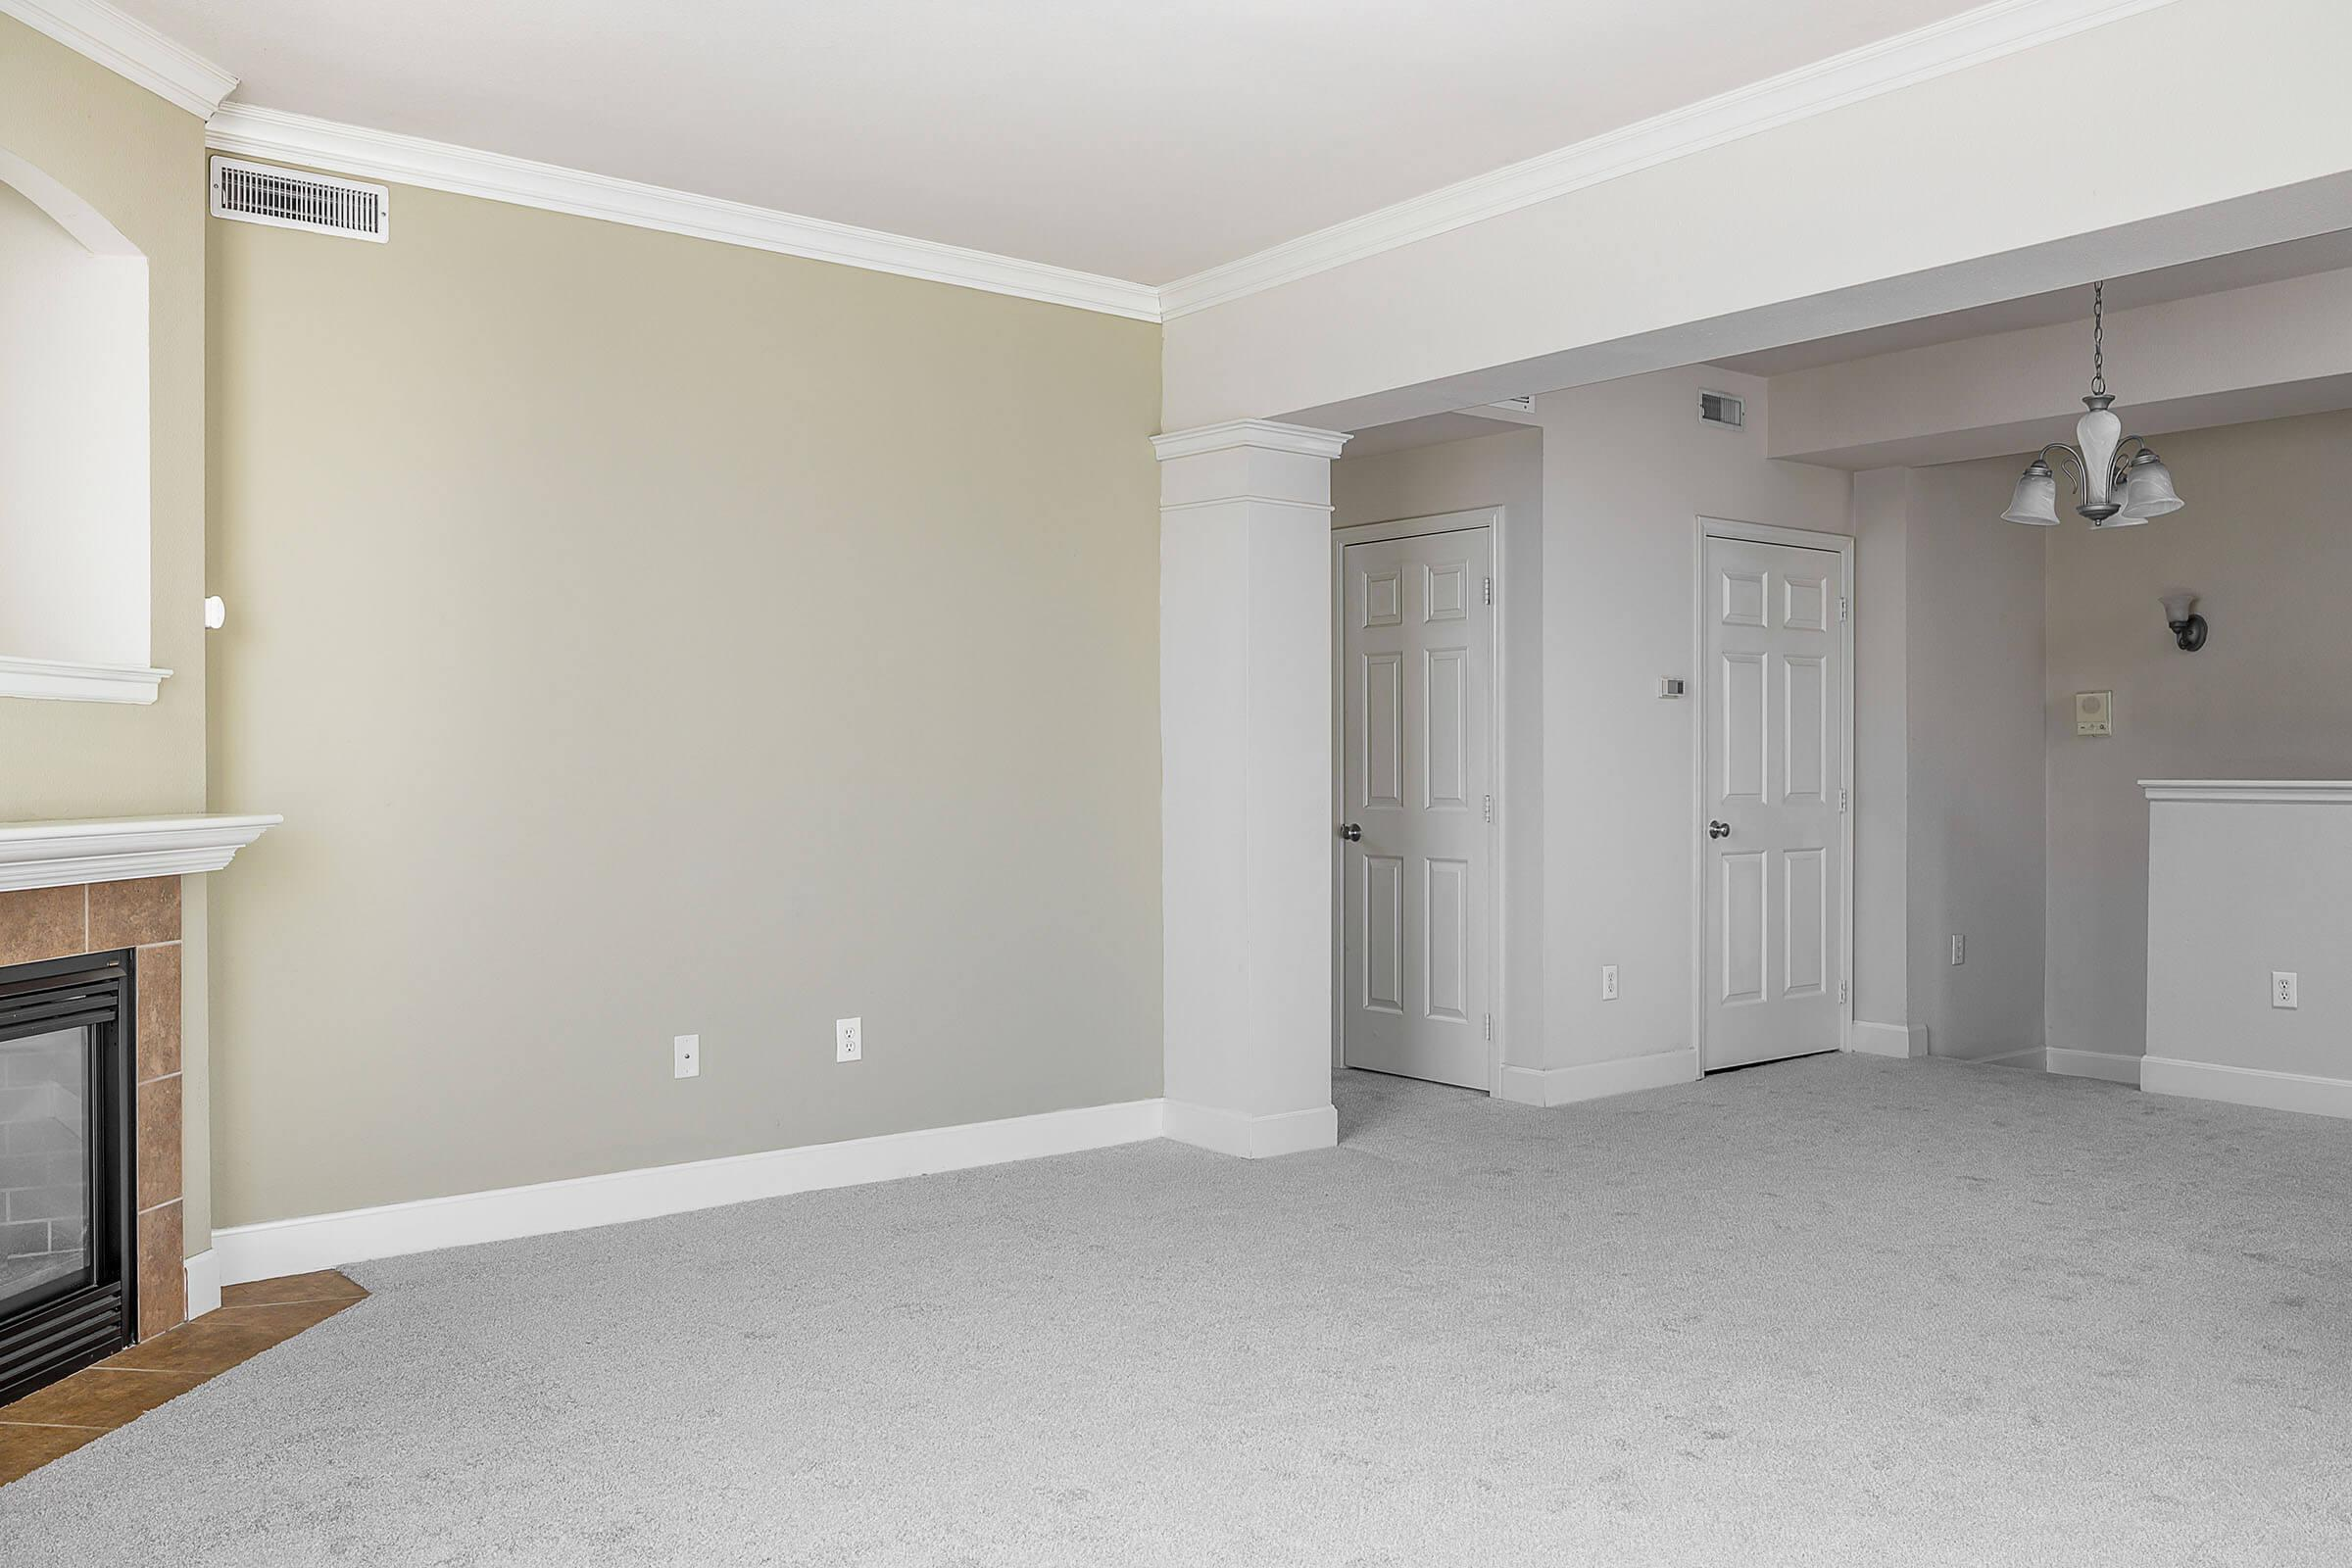 a view of a room